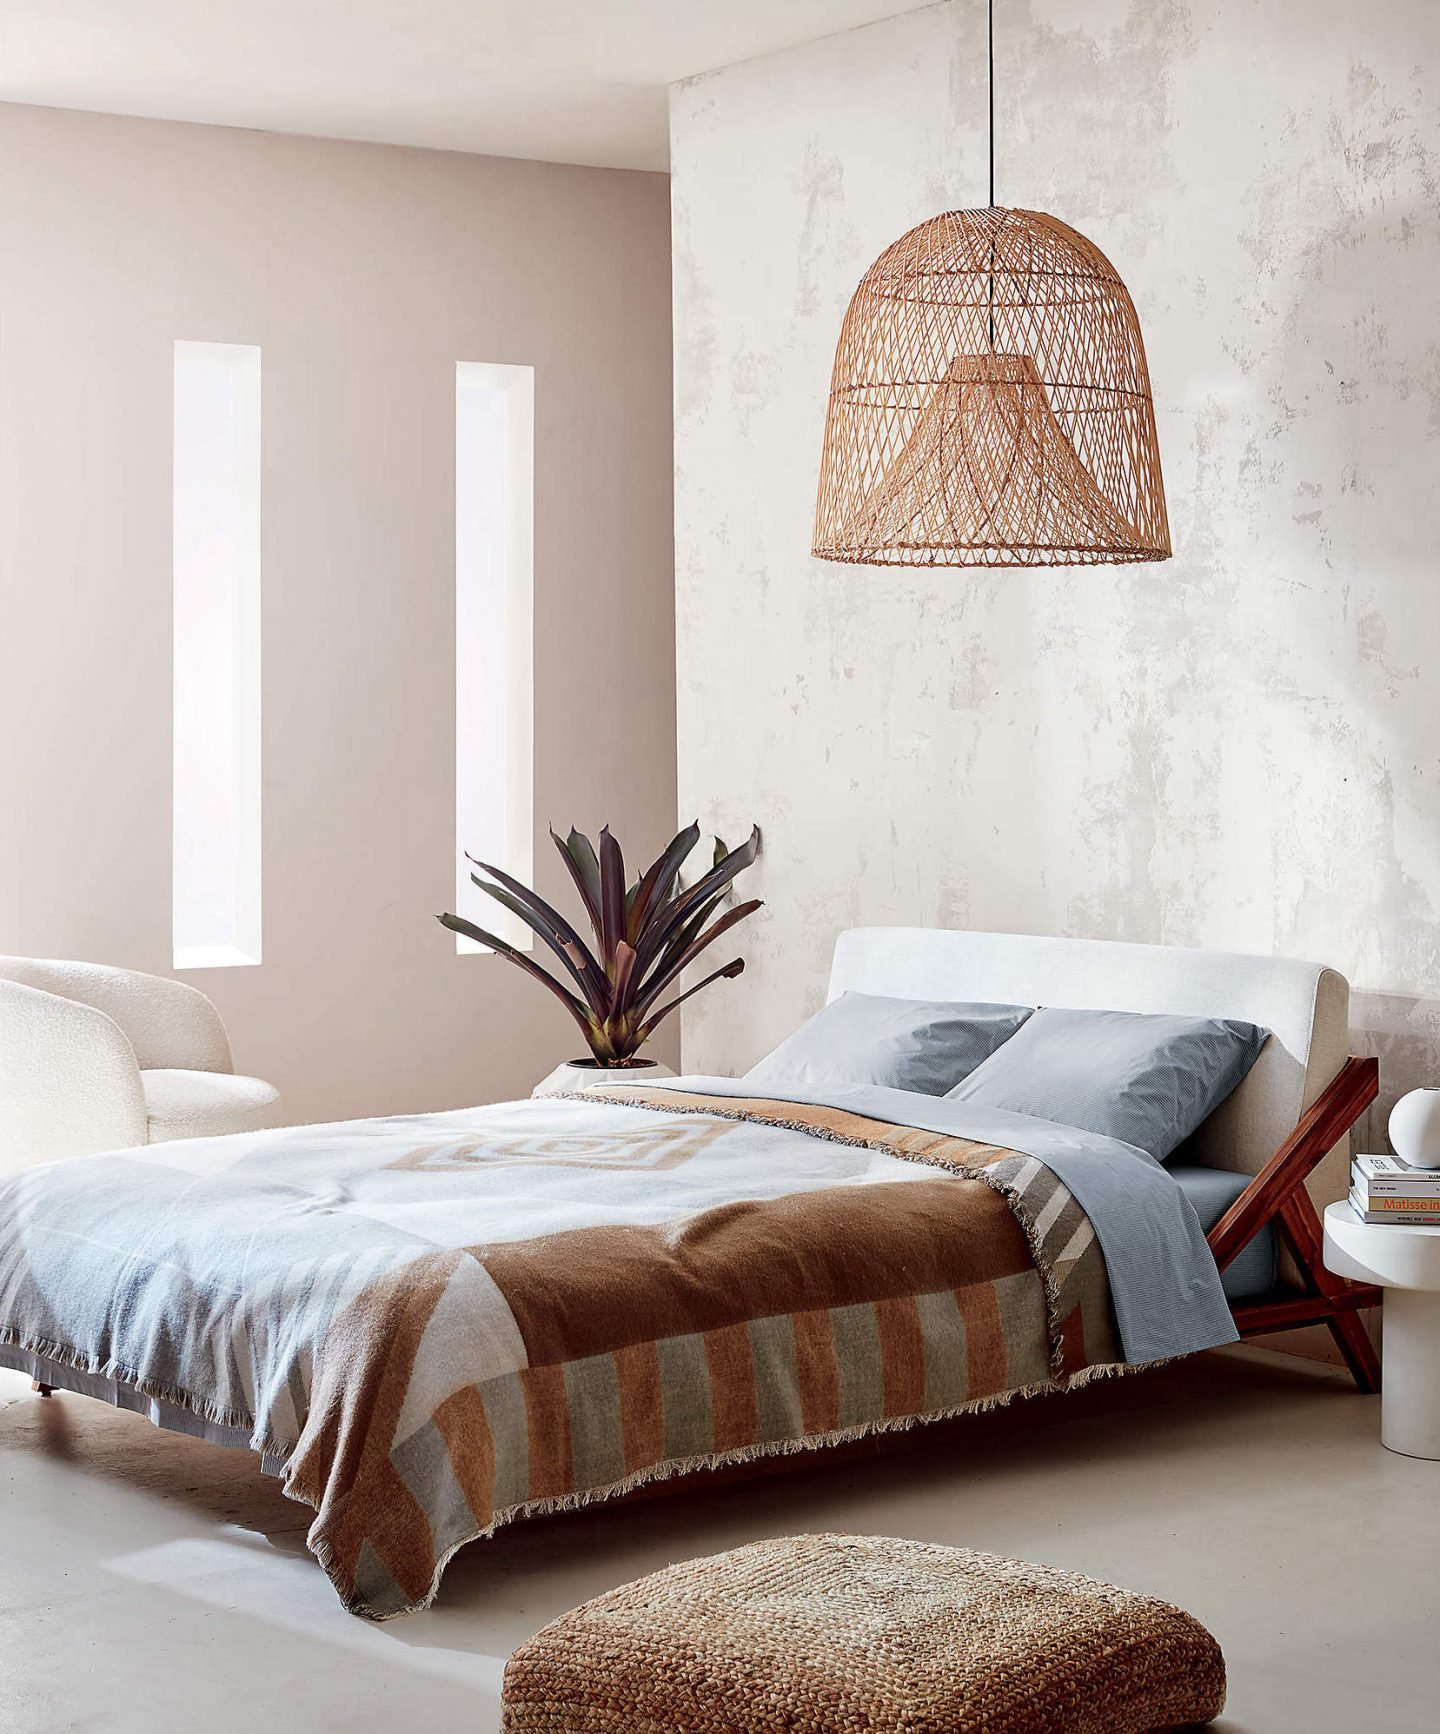 Rattan hanging lamp and low bed